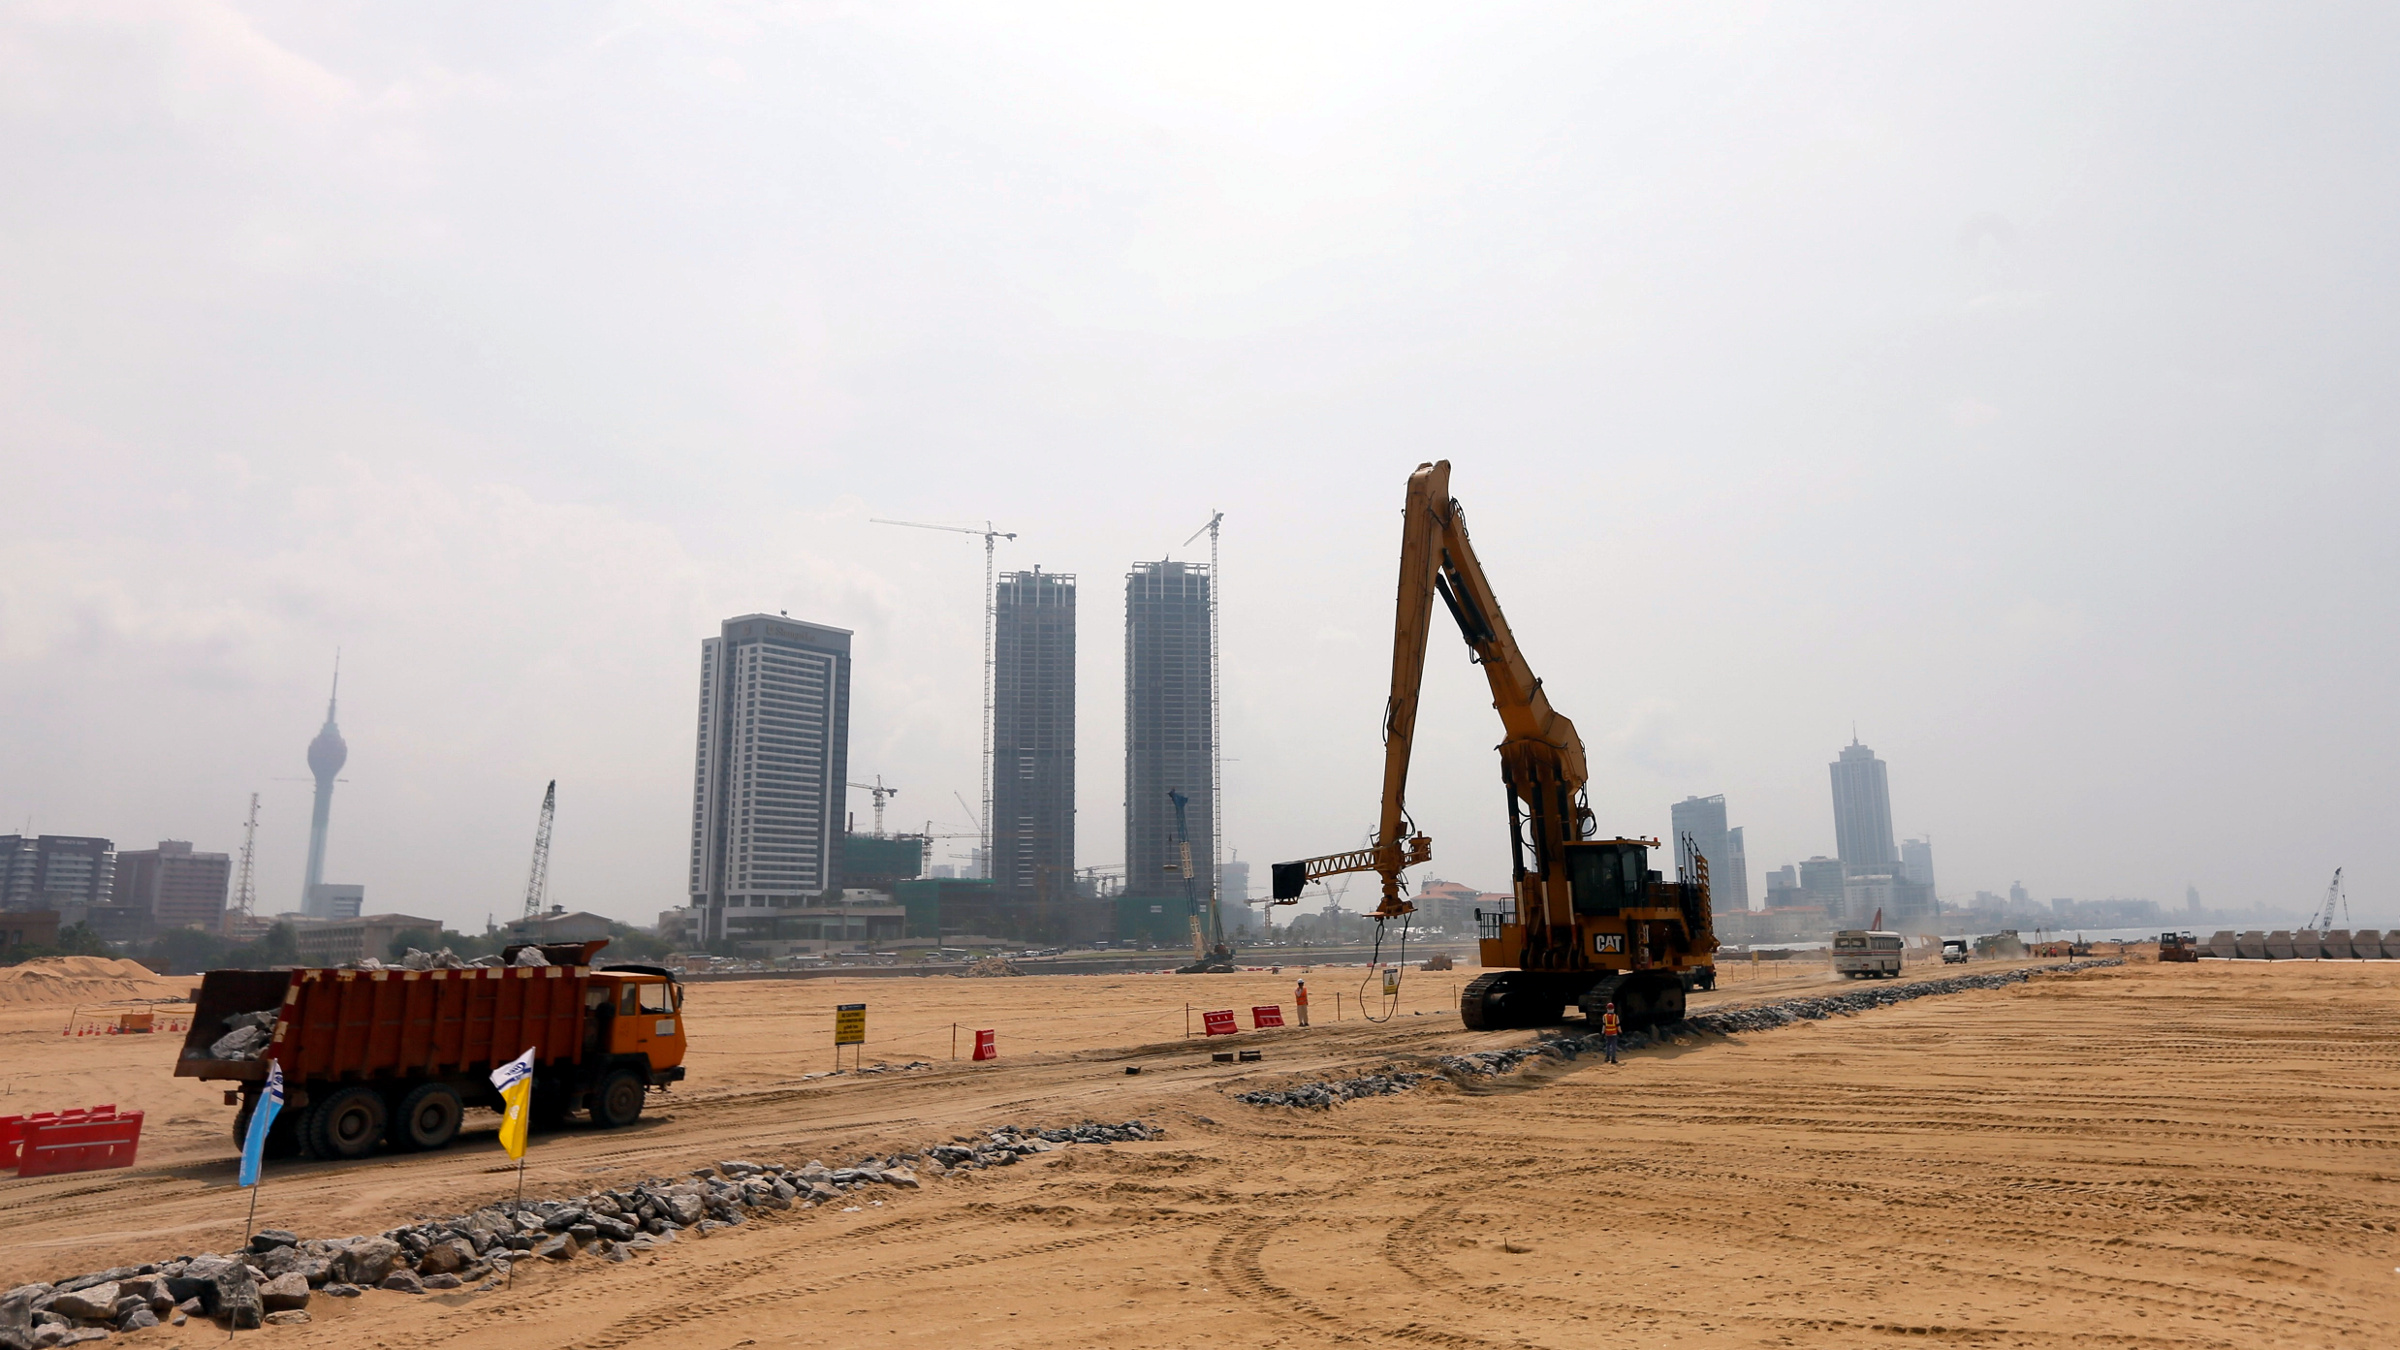 A general view of the Colombo Port City construction site with the Shangri La project in the background, in Colombo, Sri Lanka October 25, 2017.